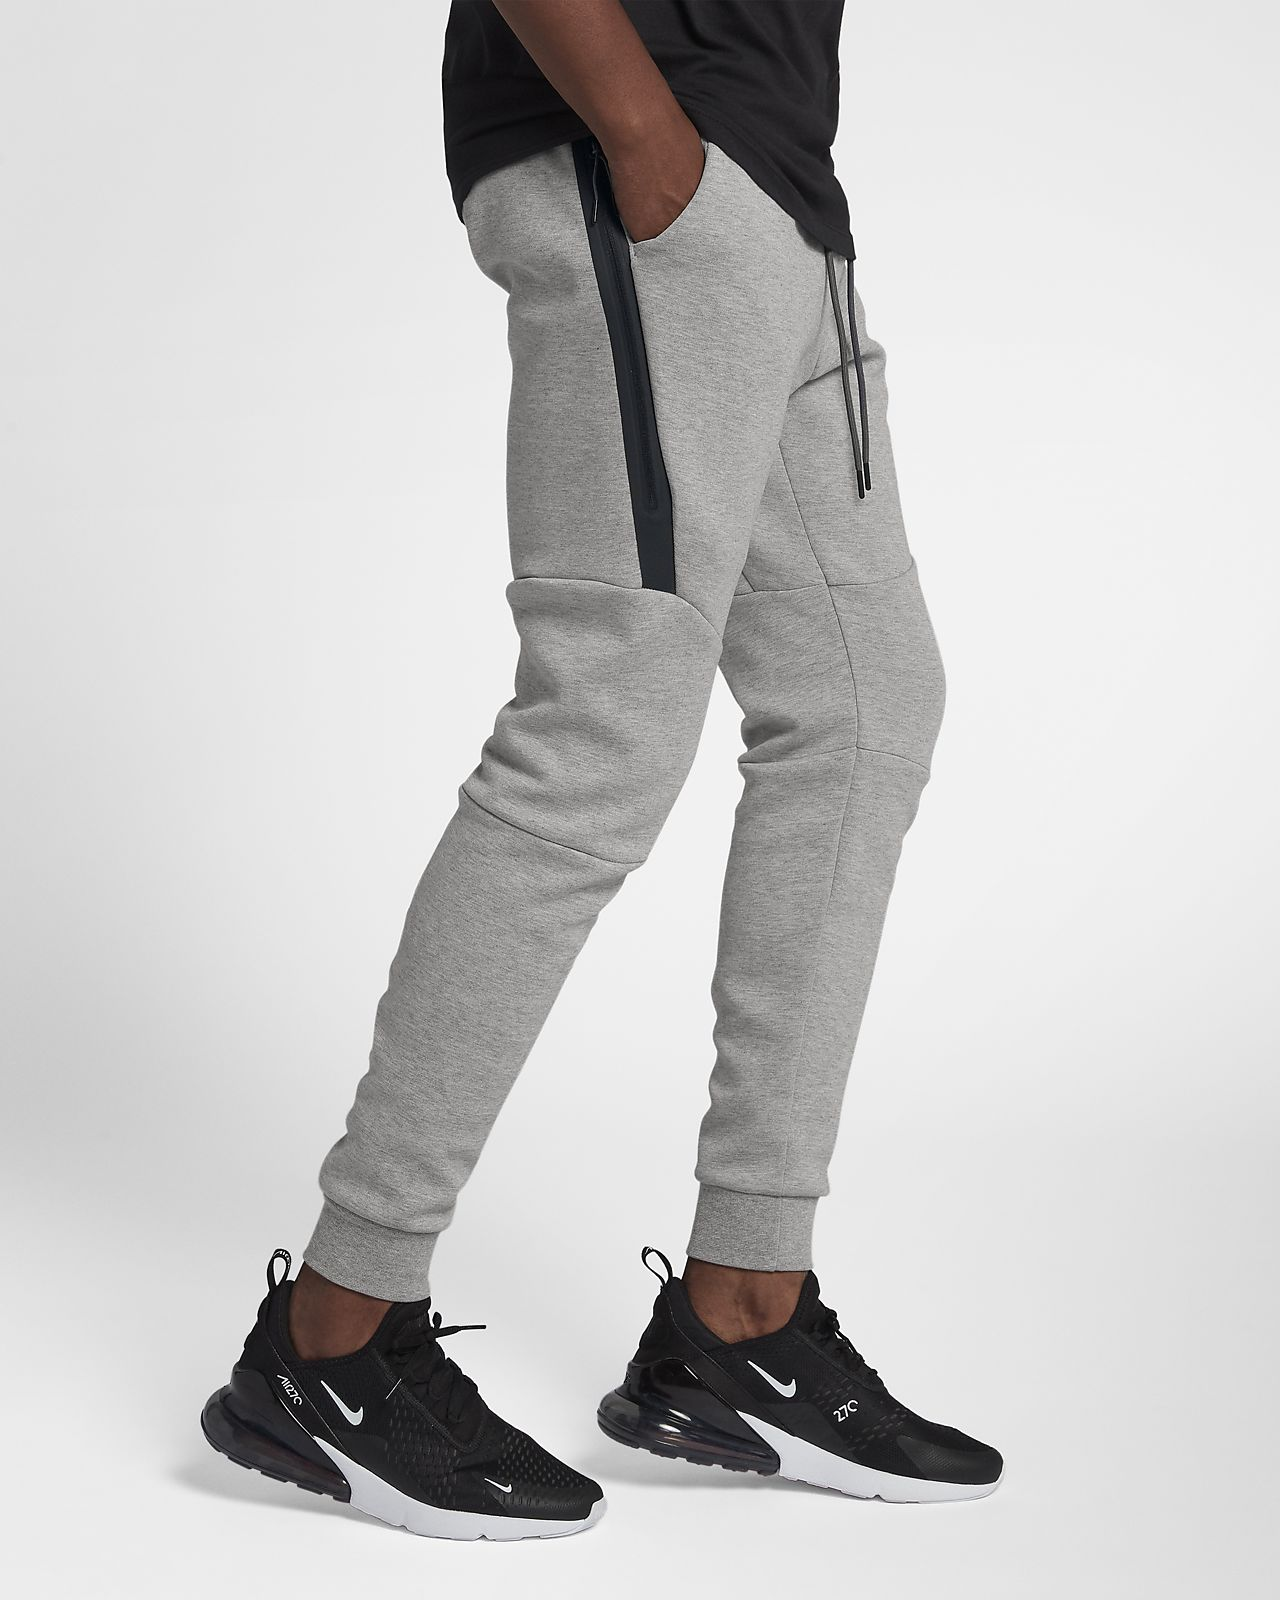 6d2f80053b3d Nike Sportswear Tech Fleece Men s Joggers. Nike.com